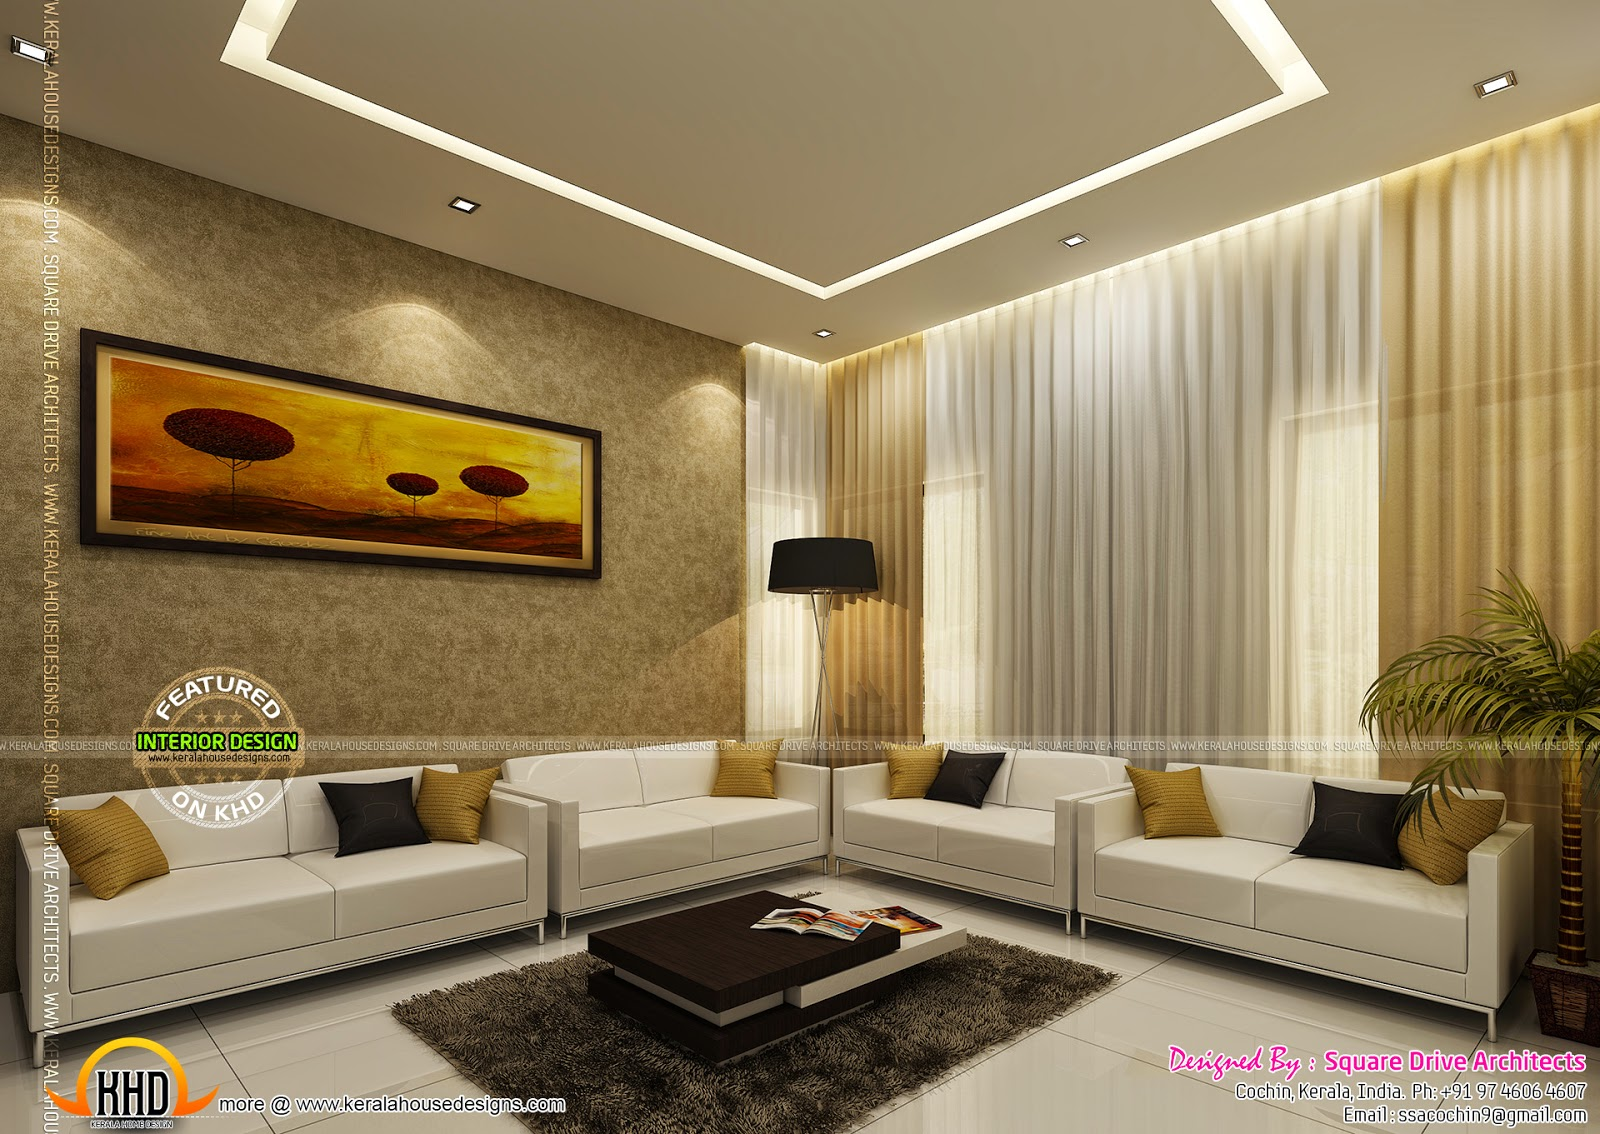 interior design ideas living room kerala style small lighting india home interiors designs - and floor plans